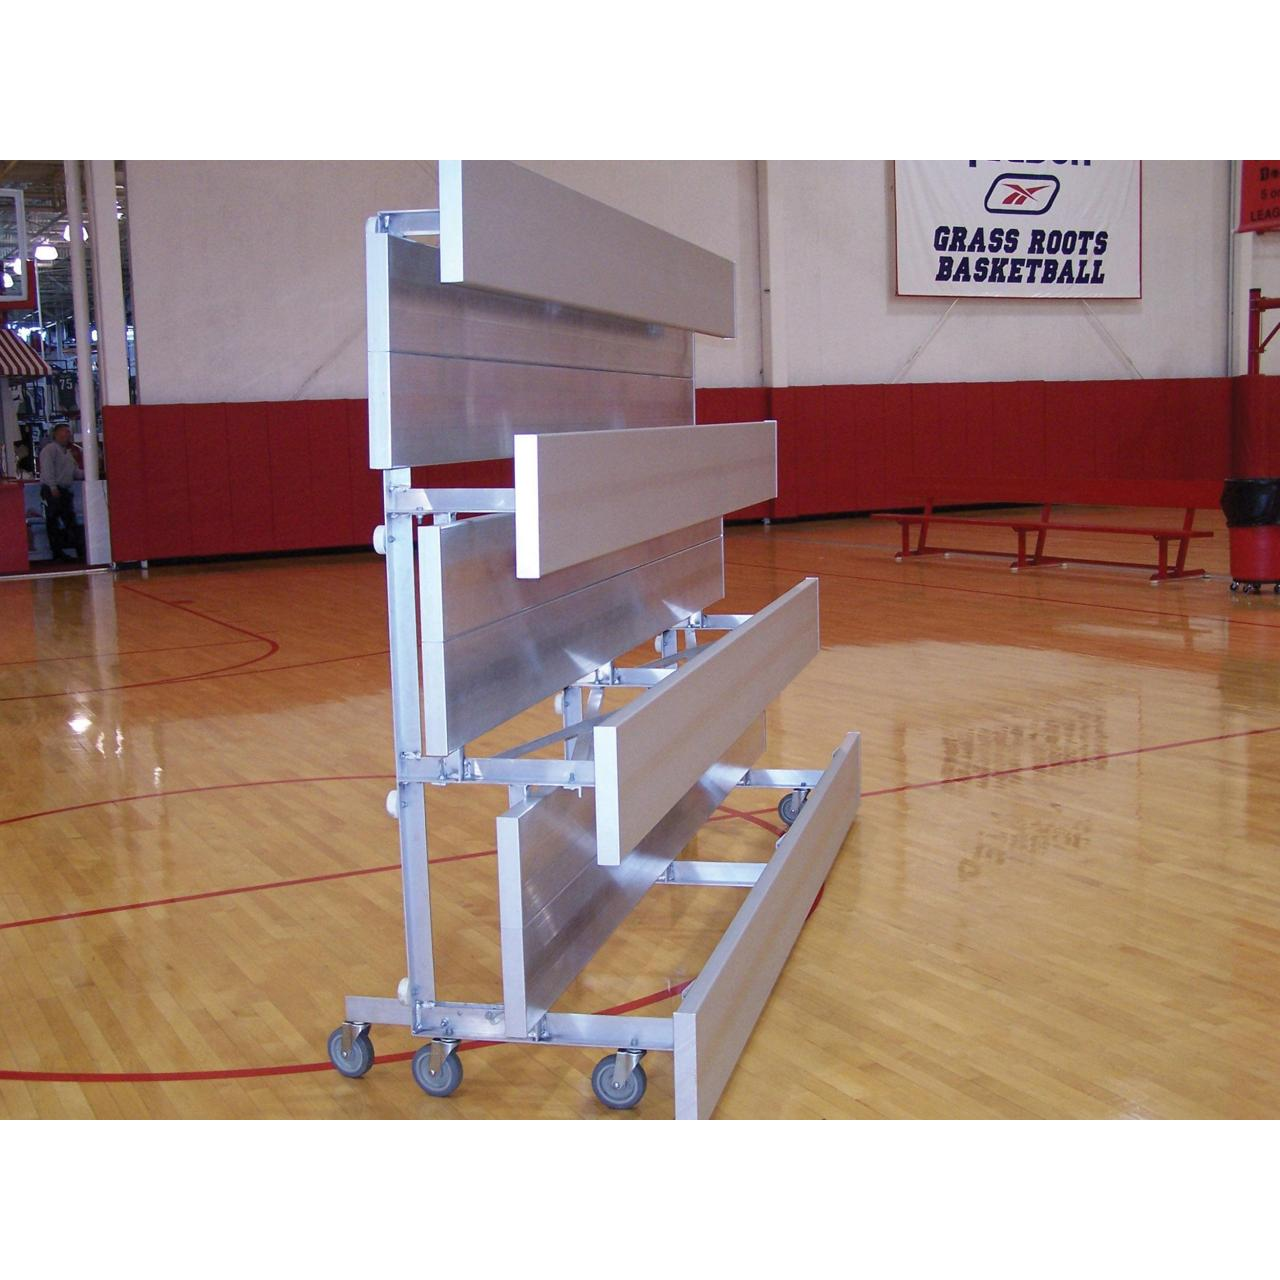 Buy cheap Baseball-Softball Tip-N-Roll Bleachers 2 Row 21' Tip-N-Roll Bleacher from wholesalers